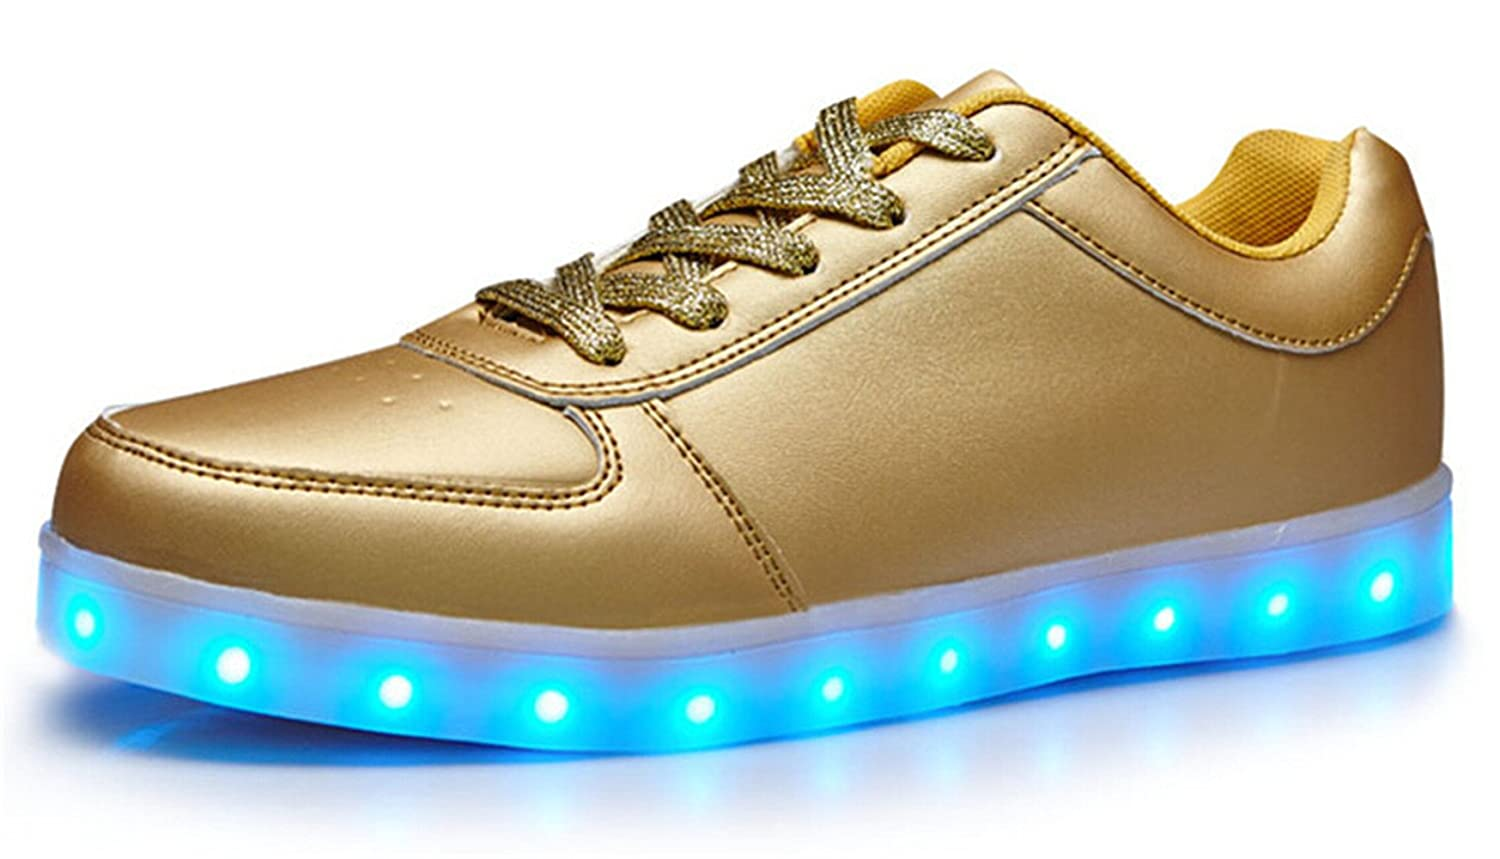 Amazon | Another Summer 7 Colors LED Luminous Unisex Men & Women  Sneakers USB Charging Light colorful Glowing Leisure Flat Shoes | Fashion  Sneakers